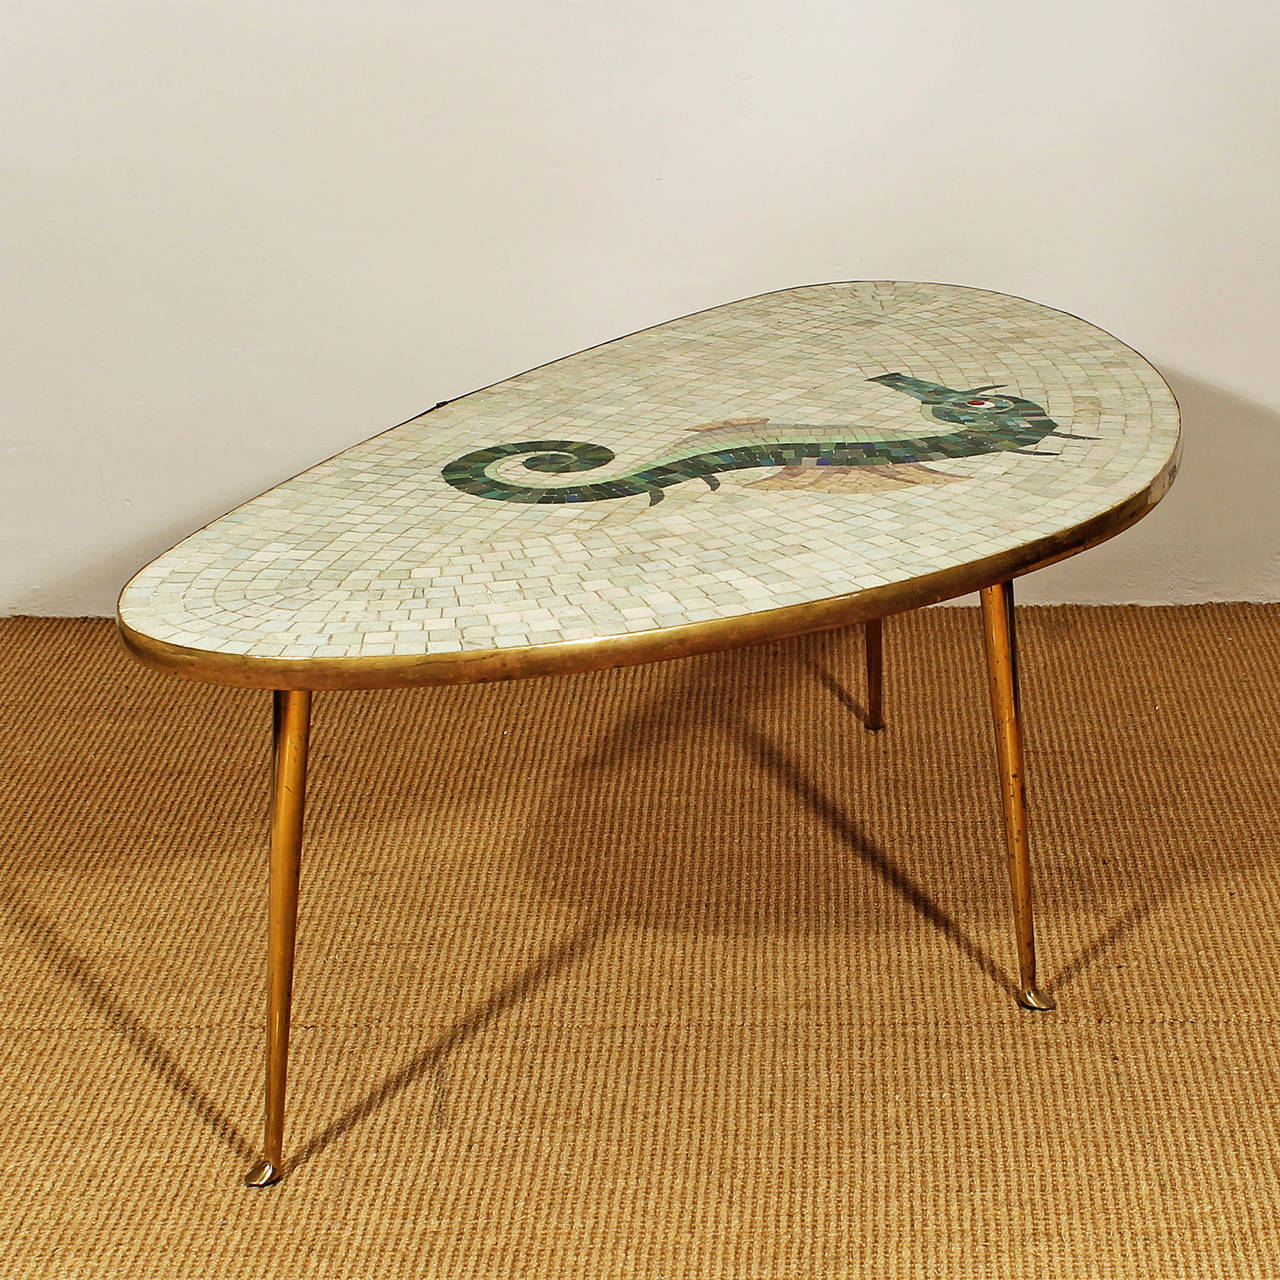 Tripod Coffee Table With Ceramic Mosaic At 1stdibs